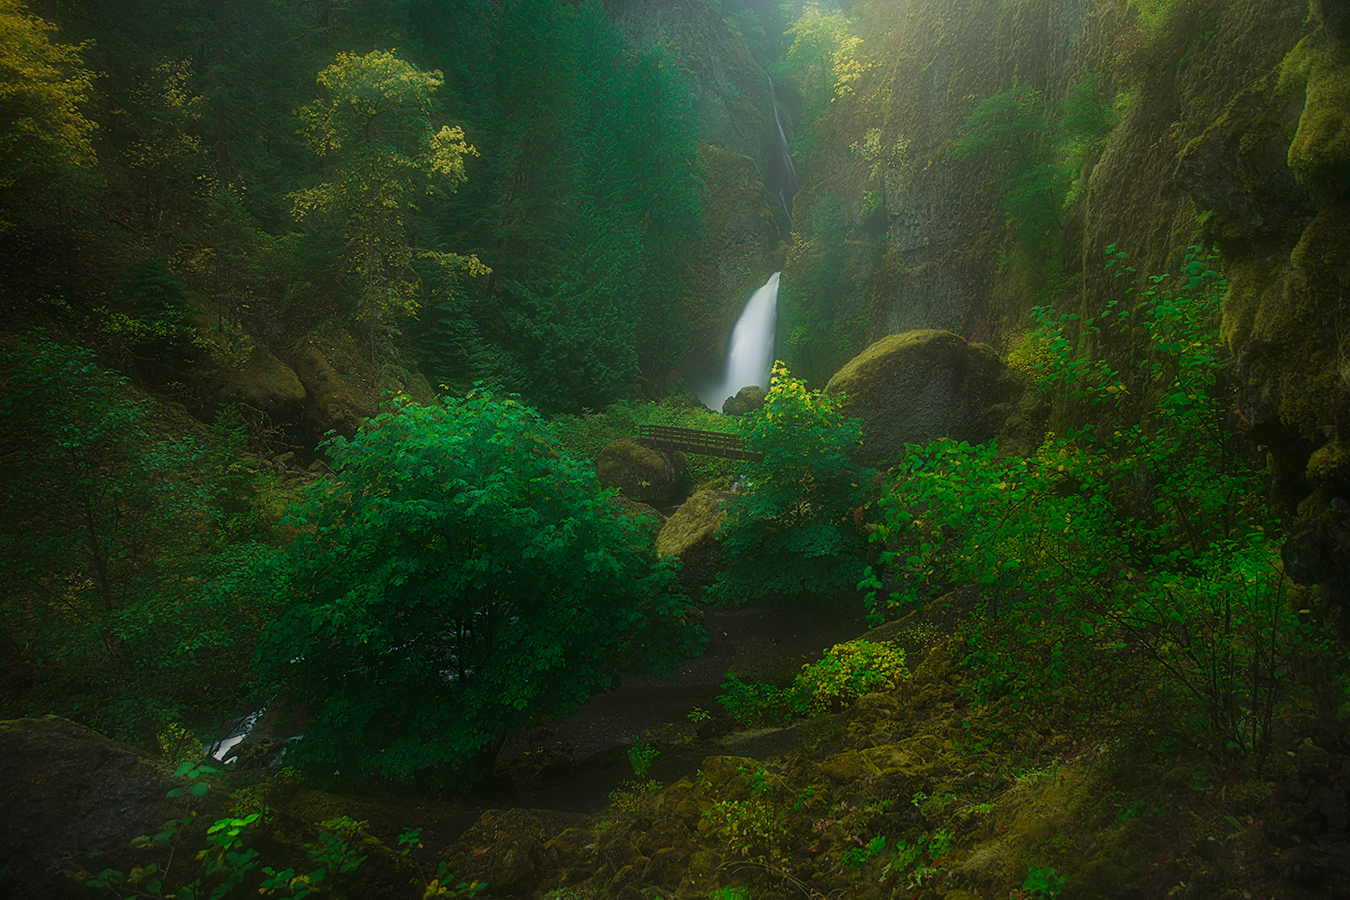 A gorgeous waterfall with light streaming down through a lush landscape of trees and brush in Oregon.